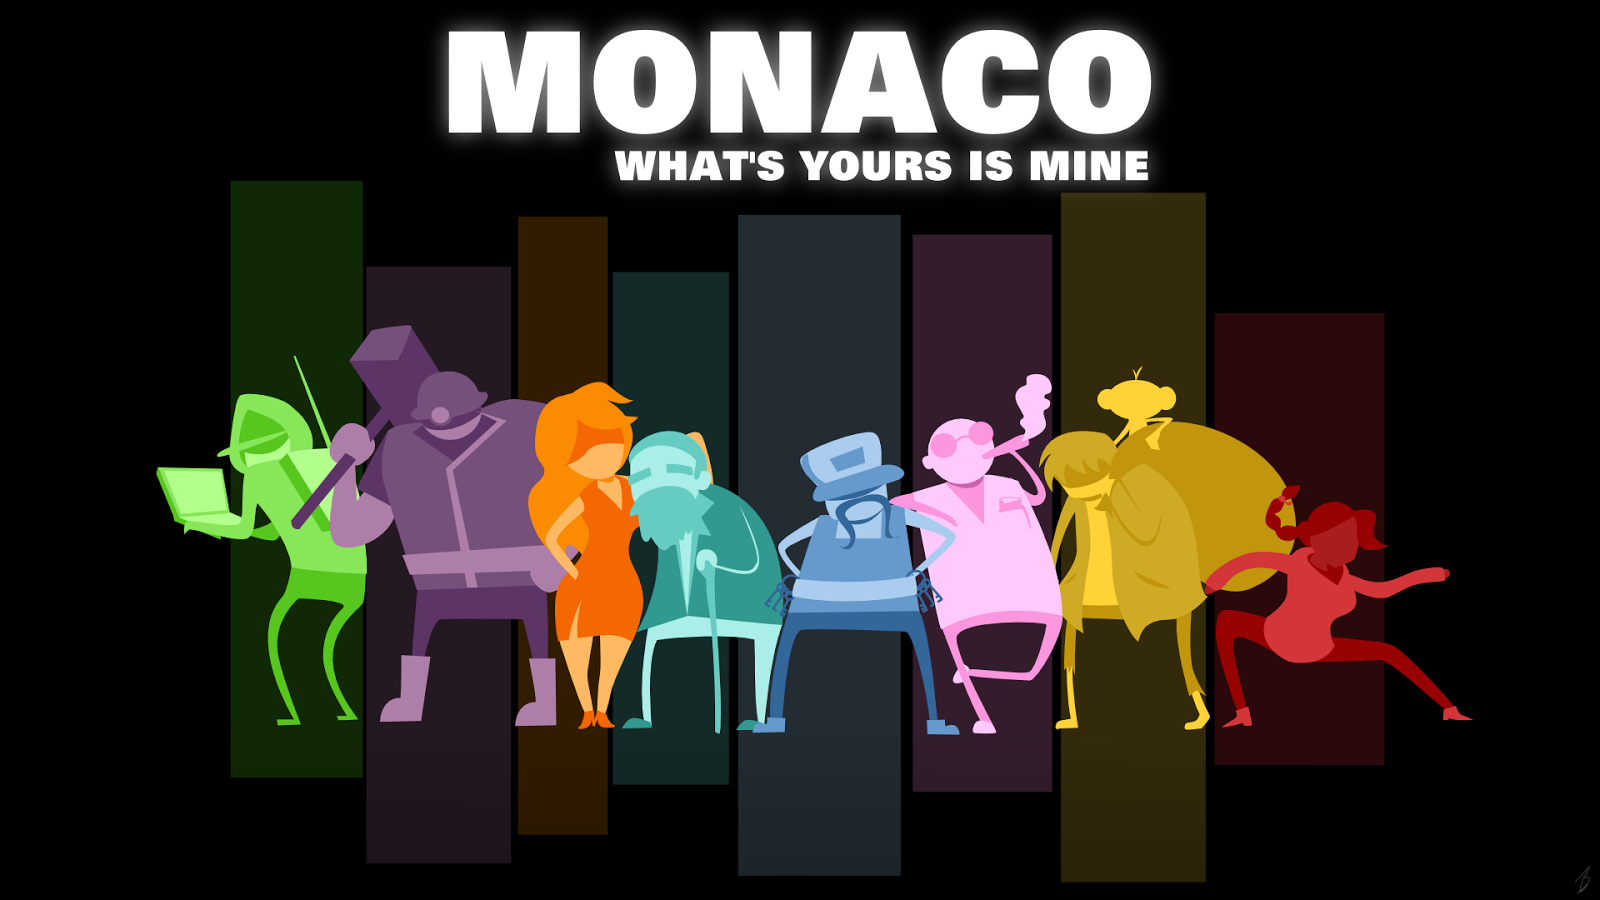 Monaco: What's Yours Is Mine v1.01 free download